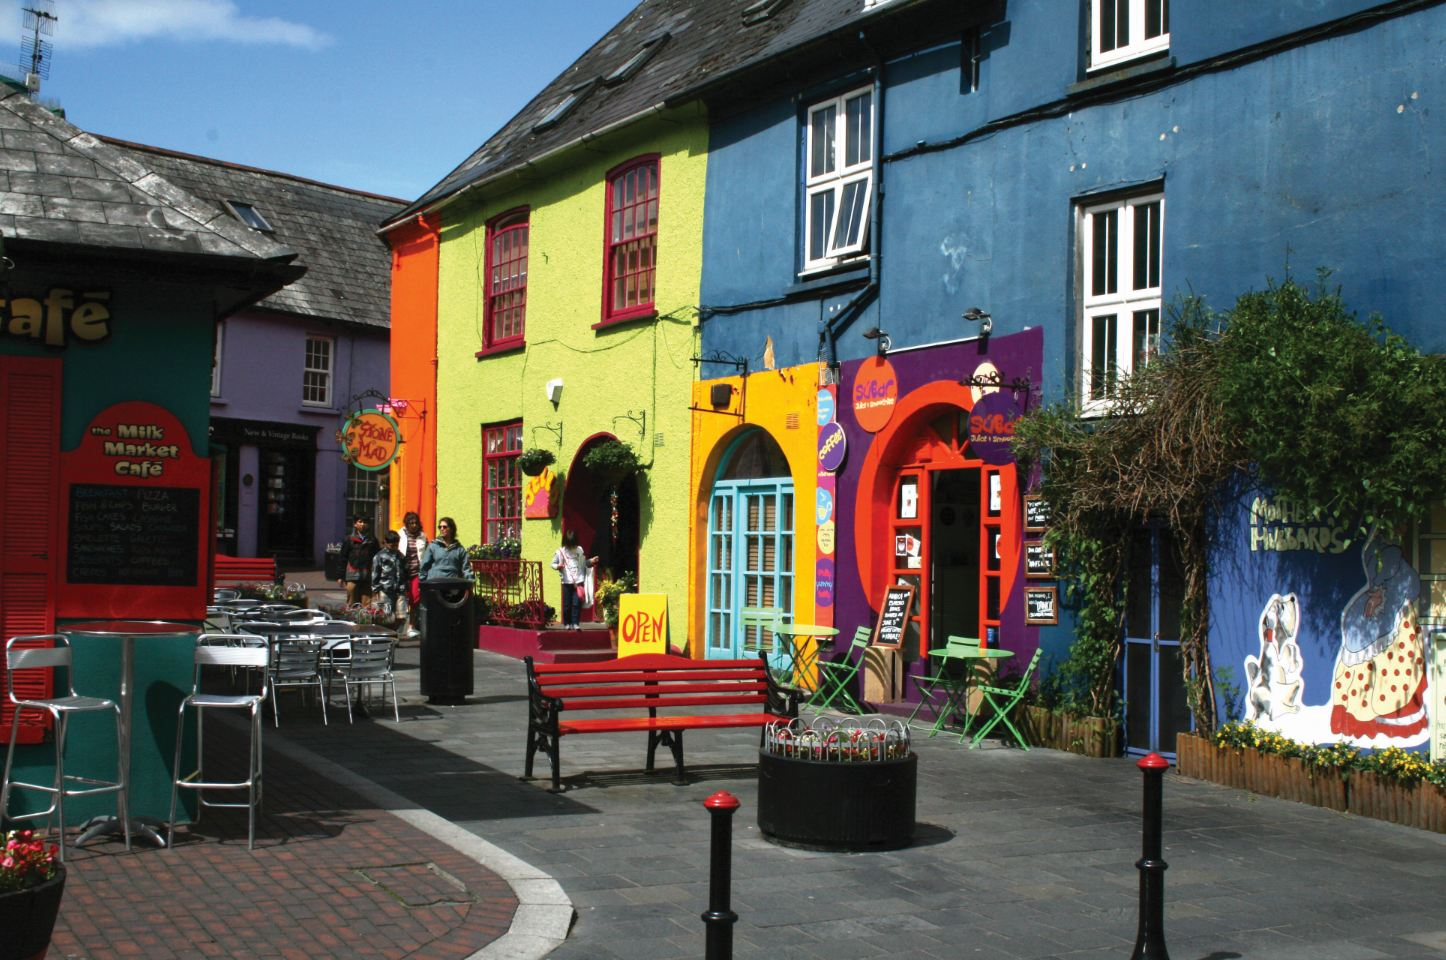 kinsale-colourful-pic-7-mss-sourced-image-1.jpg